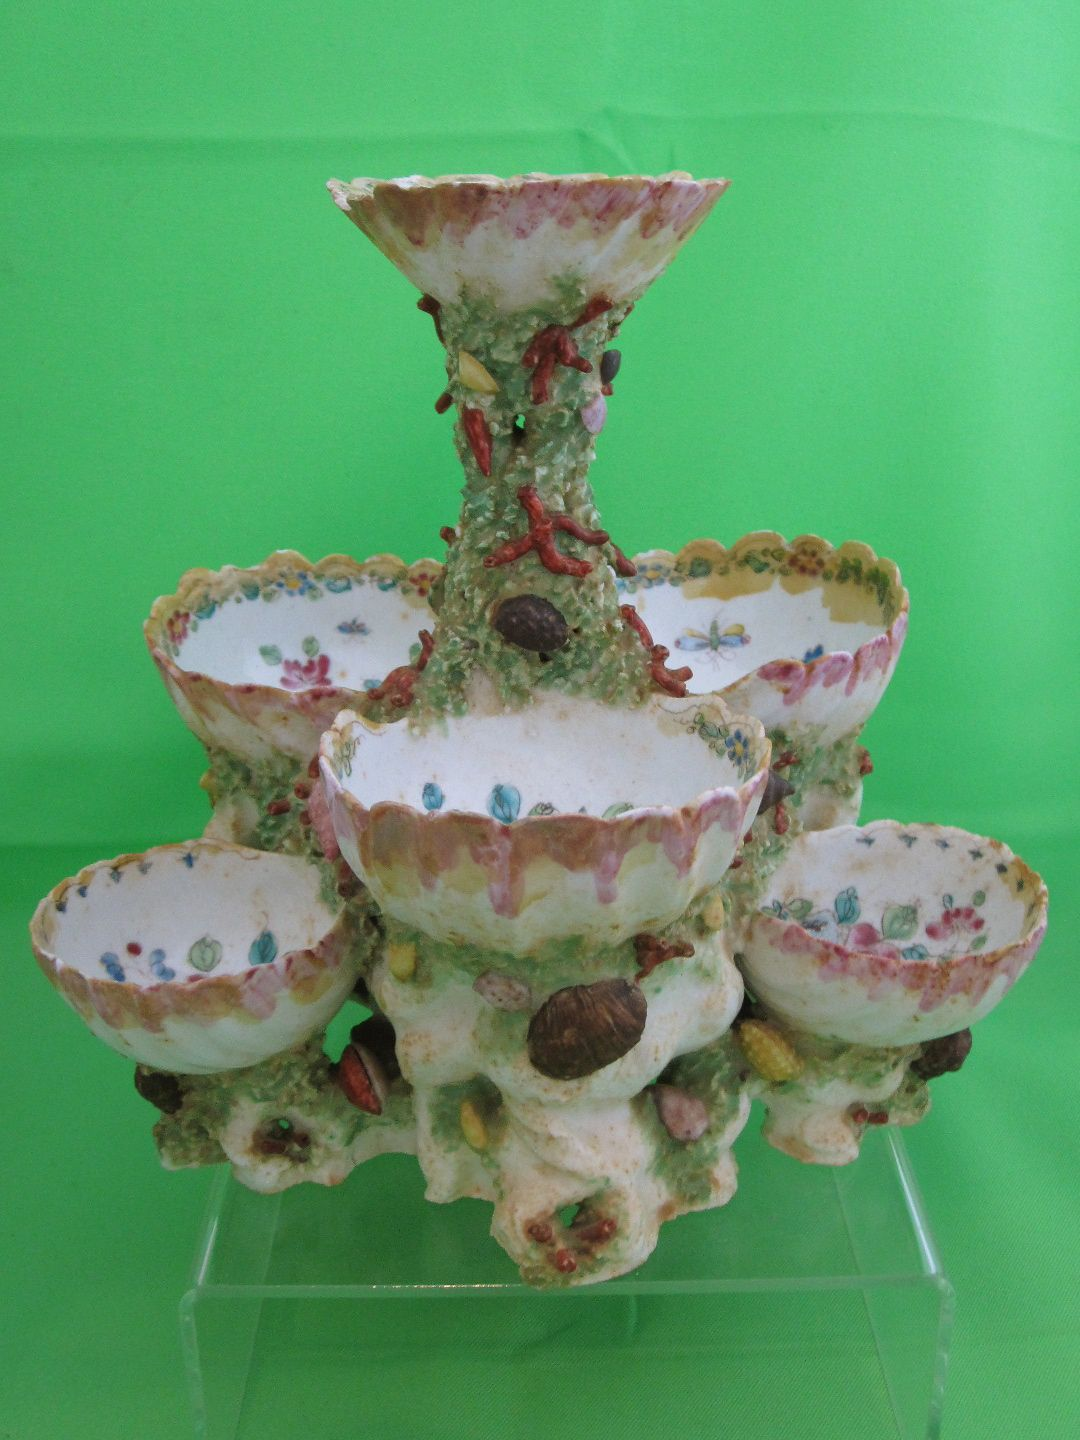 For your consideration, an extremely rare BOW Porcelain Shell & Coral Tiered Sweetmeat or Pickle Server. The Bow porcelain factory (active ca 1747-1764, closed 1776) was an emulative rival of the Chelsea porcelain factory in the manufacture of early soft-paste porcelain in Great Britain.